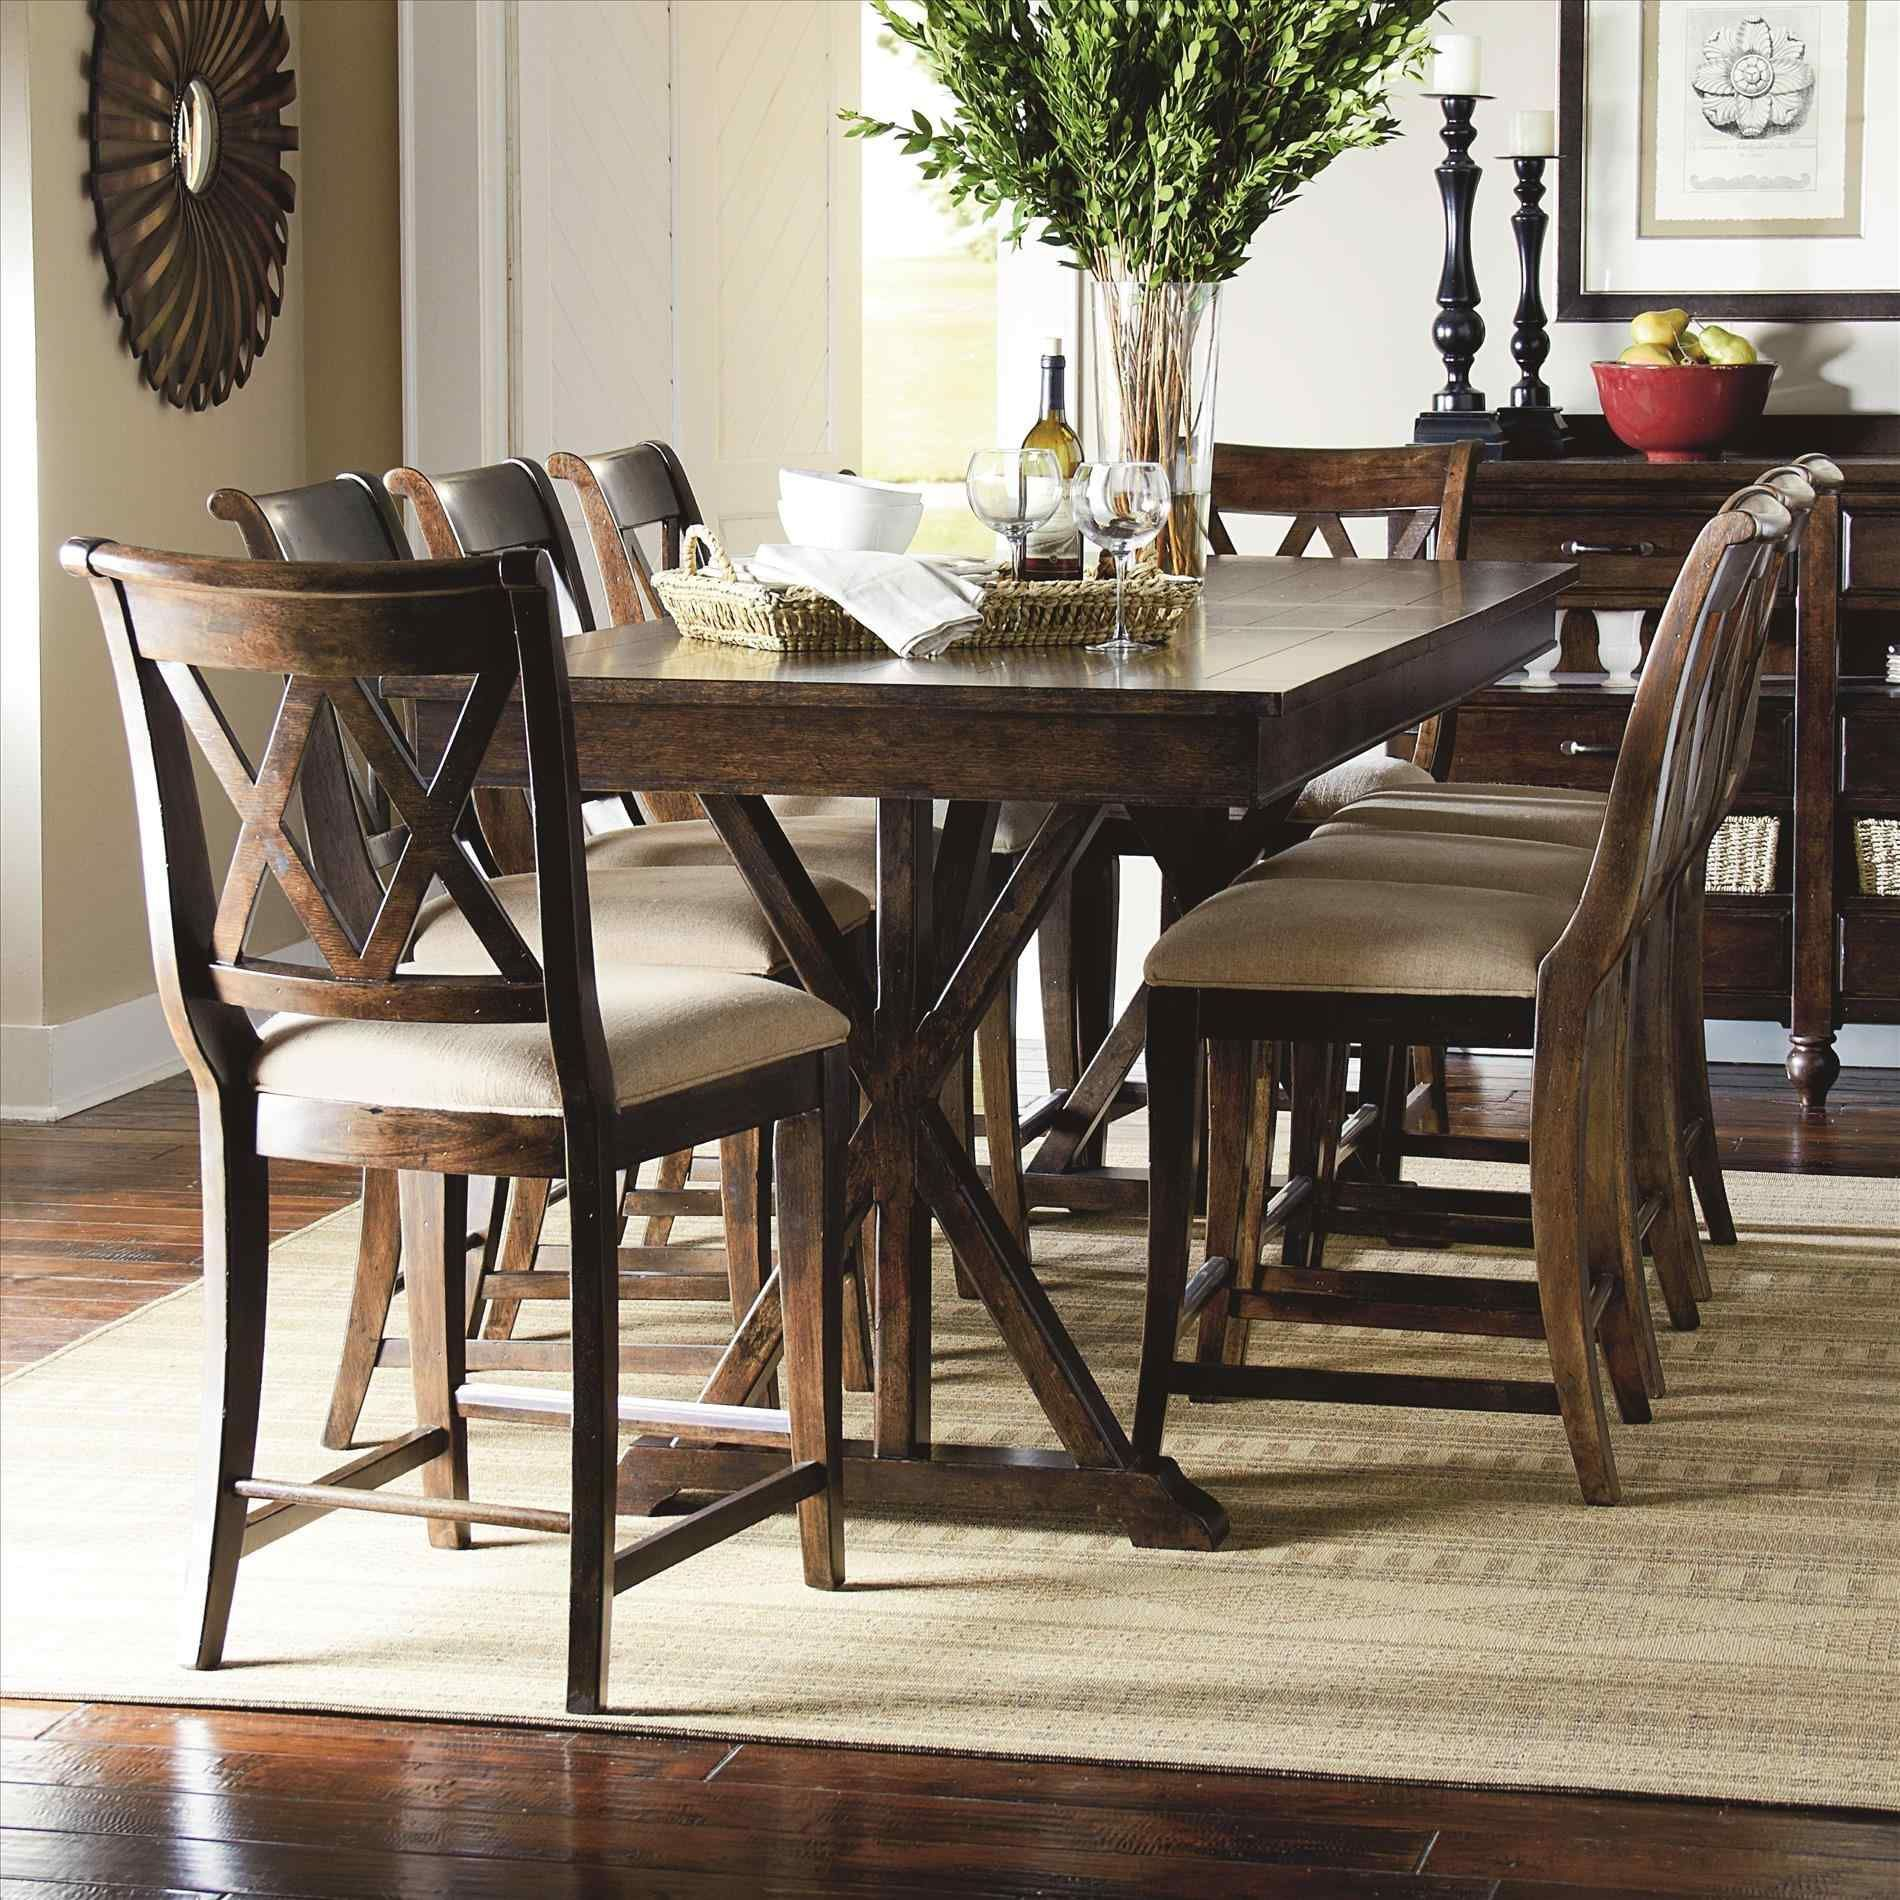 Room Table Seats 9 Room A Charming Wooden Piece Set In ...